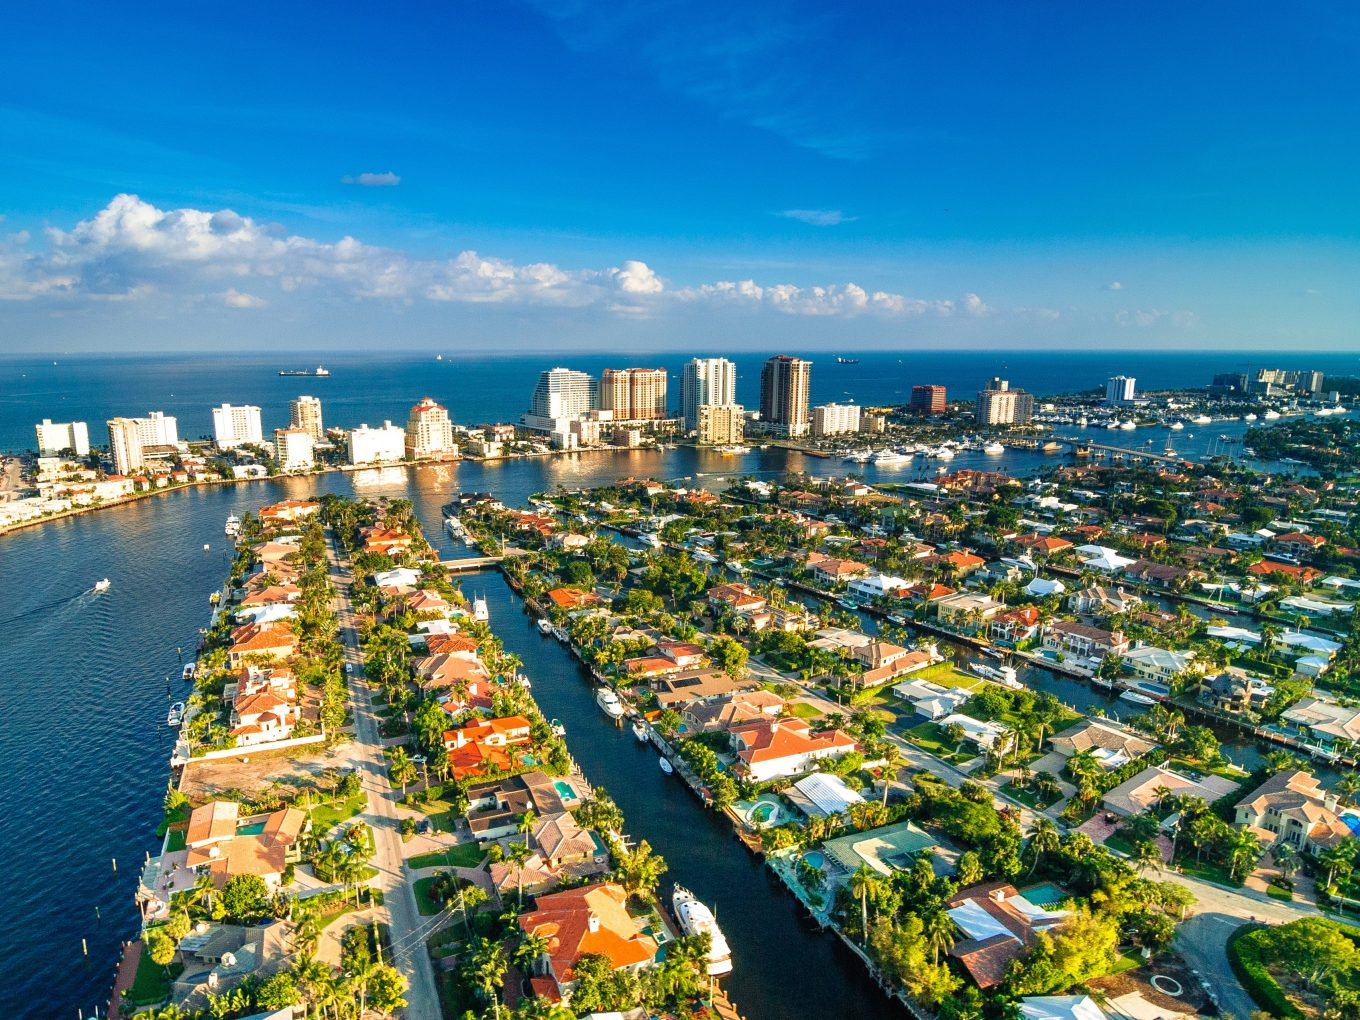 fort lauderdale design guide Fort Lauderdale Design Guide fort lauderdale design guide 9